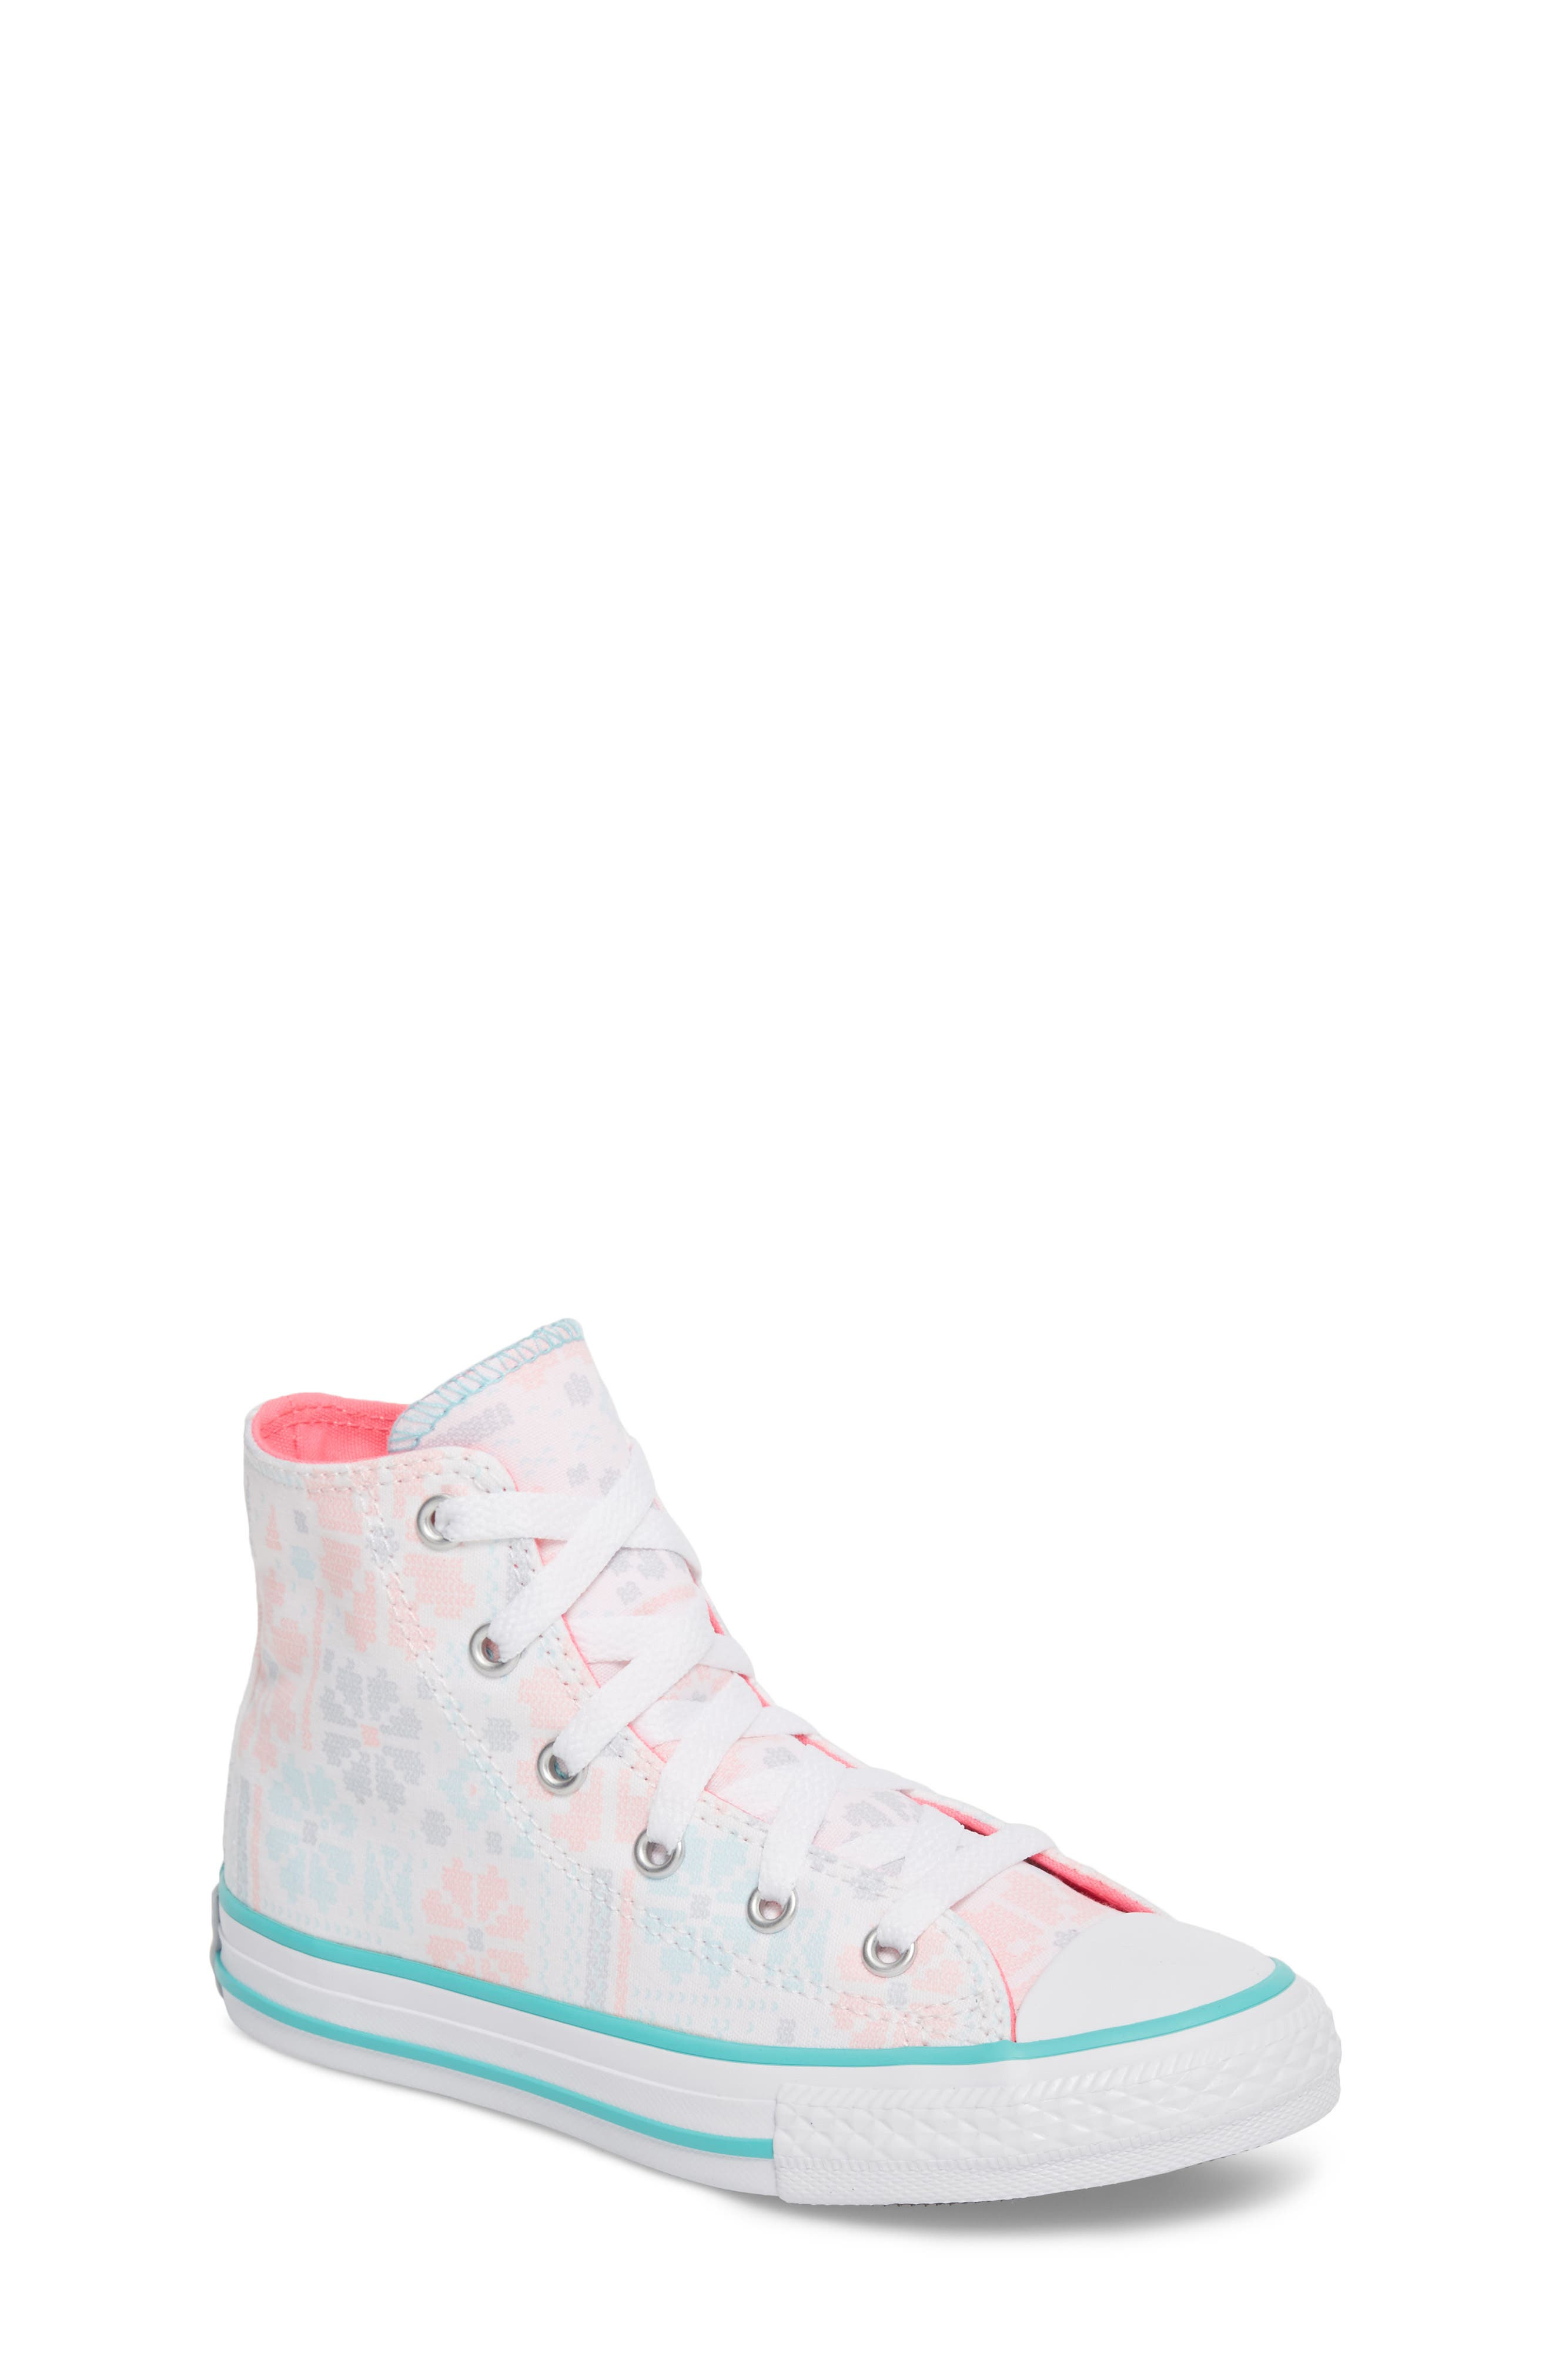 Chuck Taylor<sup>®</sup> All Star<sup>®</sup> High Top Sneaker,                         Main,                         color, White/ Pink Canvas